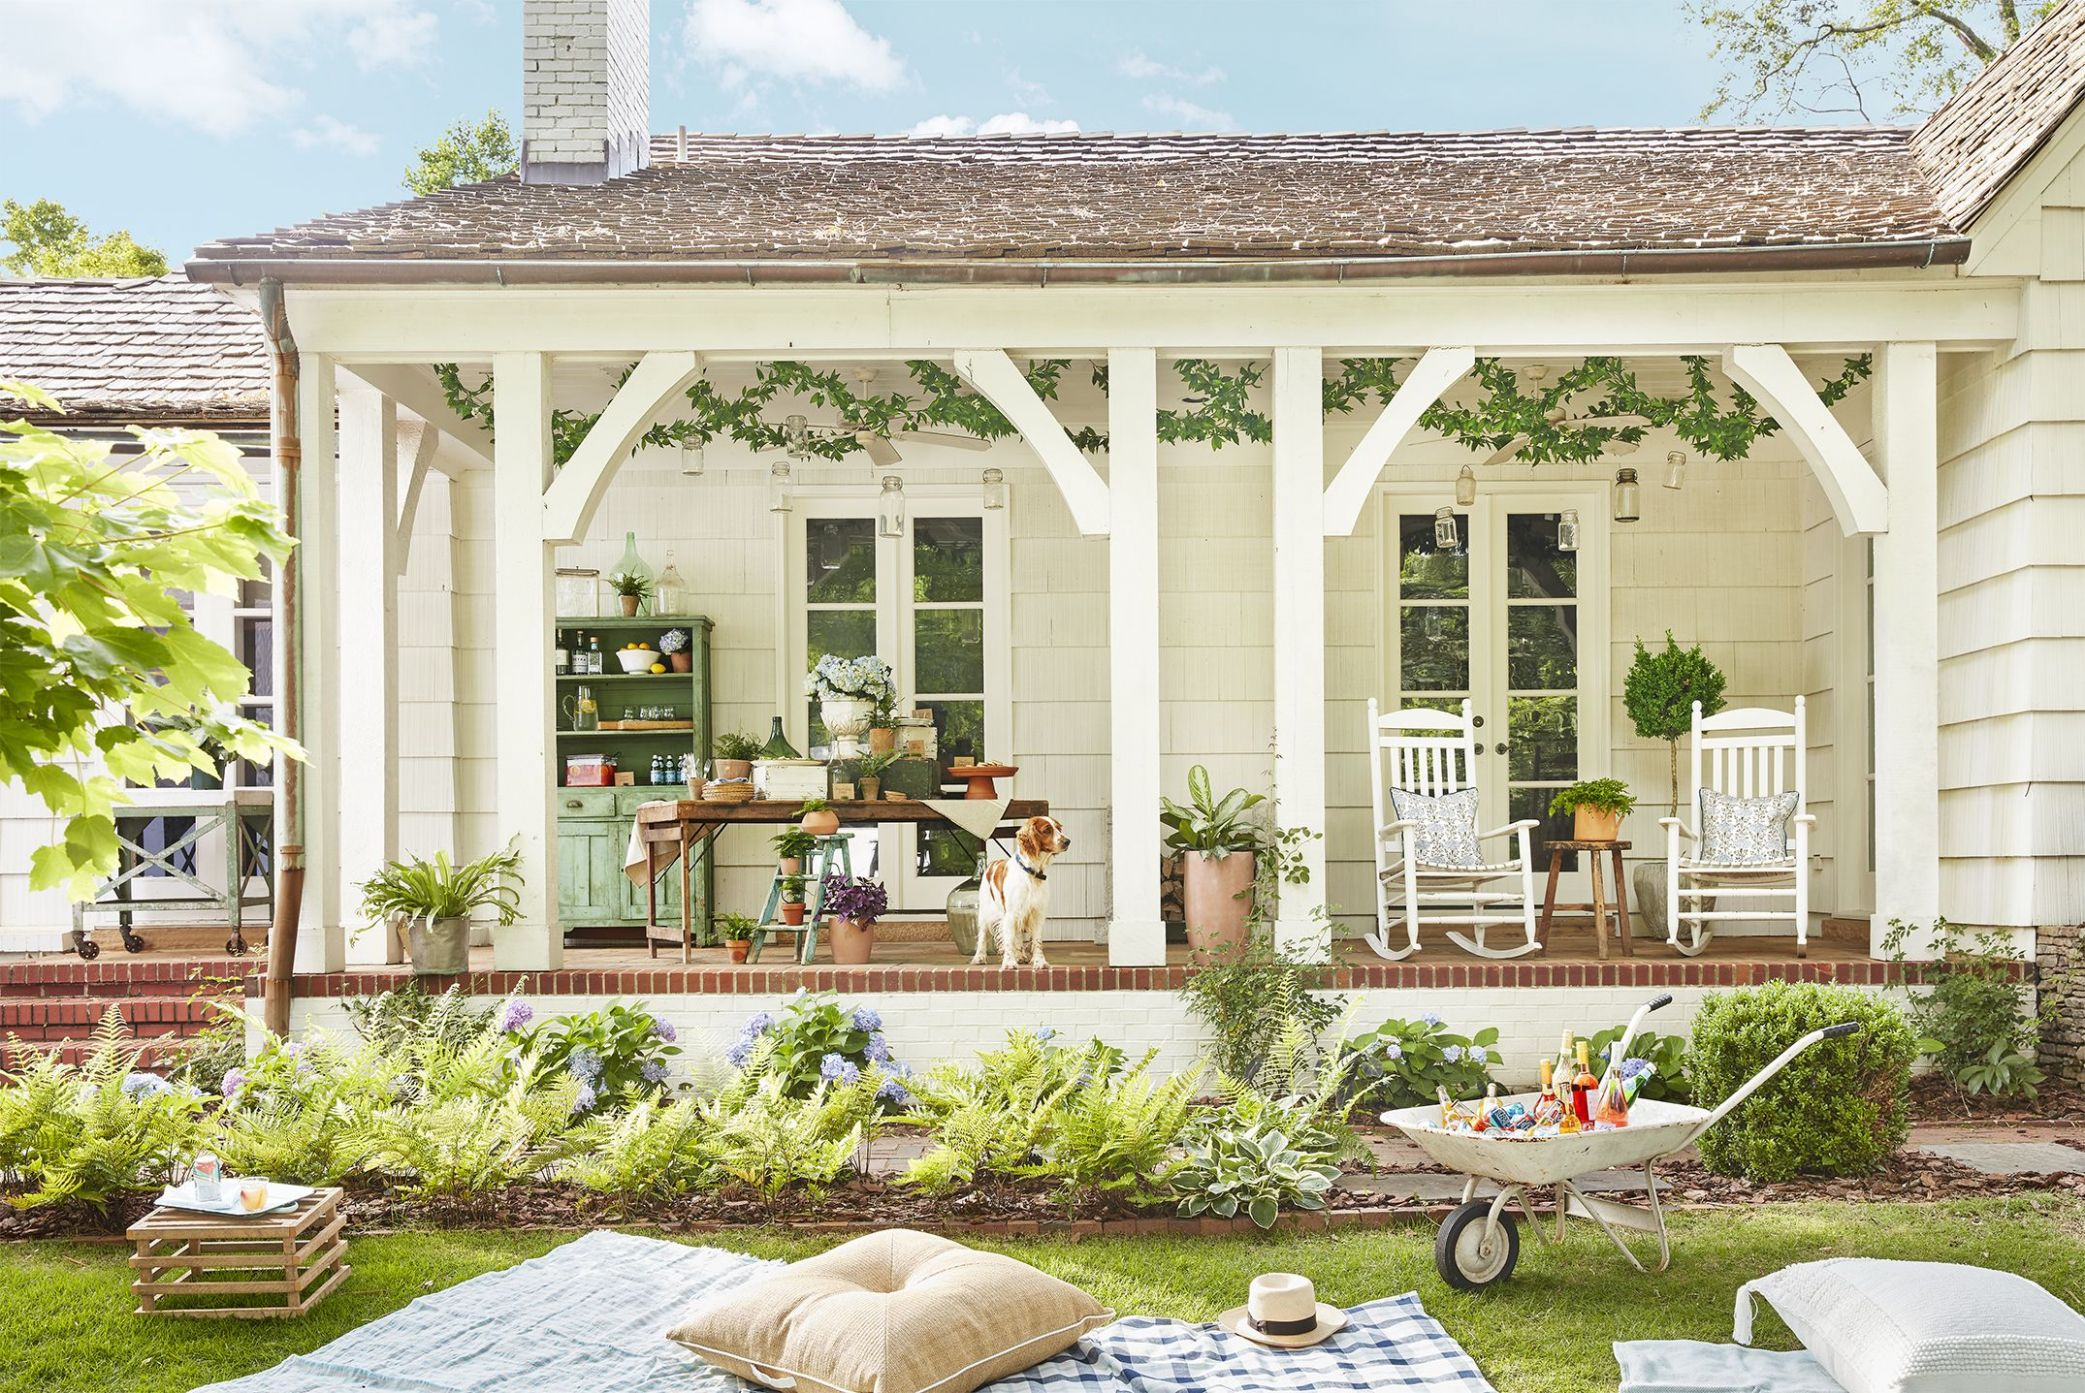 9 Best Front Porch Ideas - Ideas for Front Porch and Patio Decorating - front porch home decor lake country